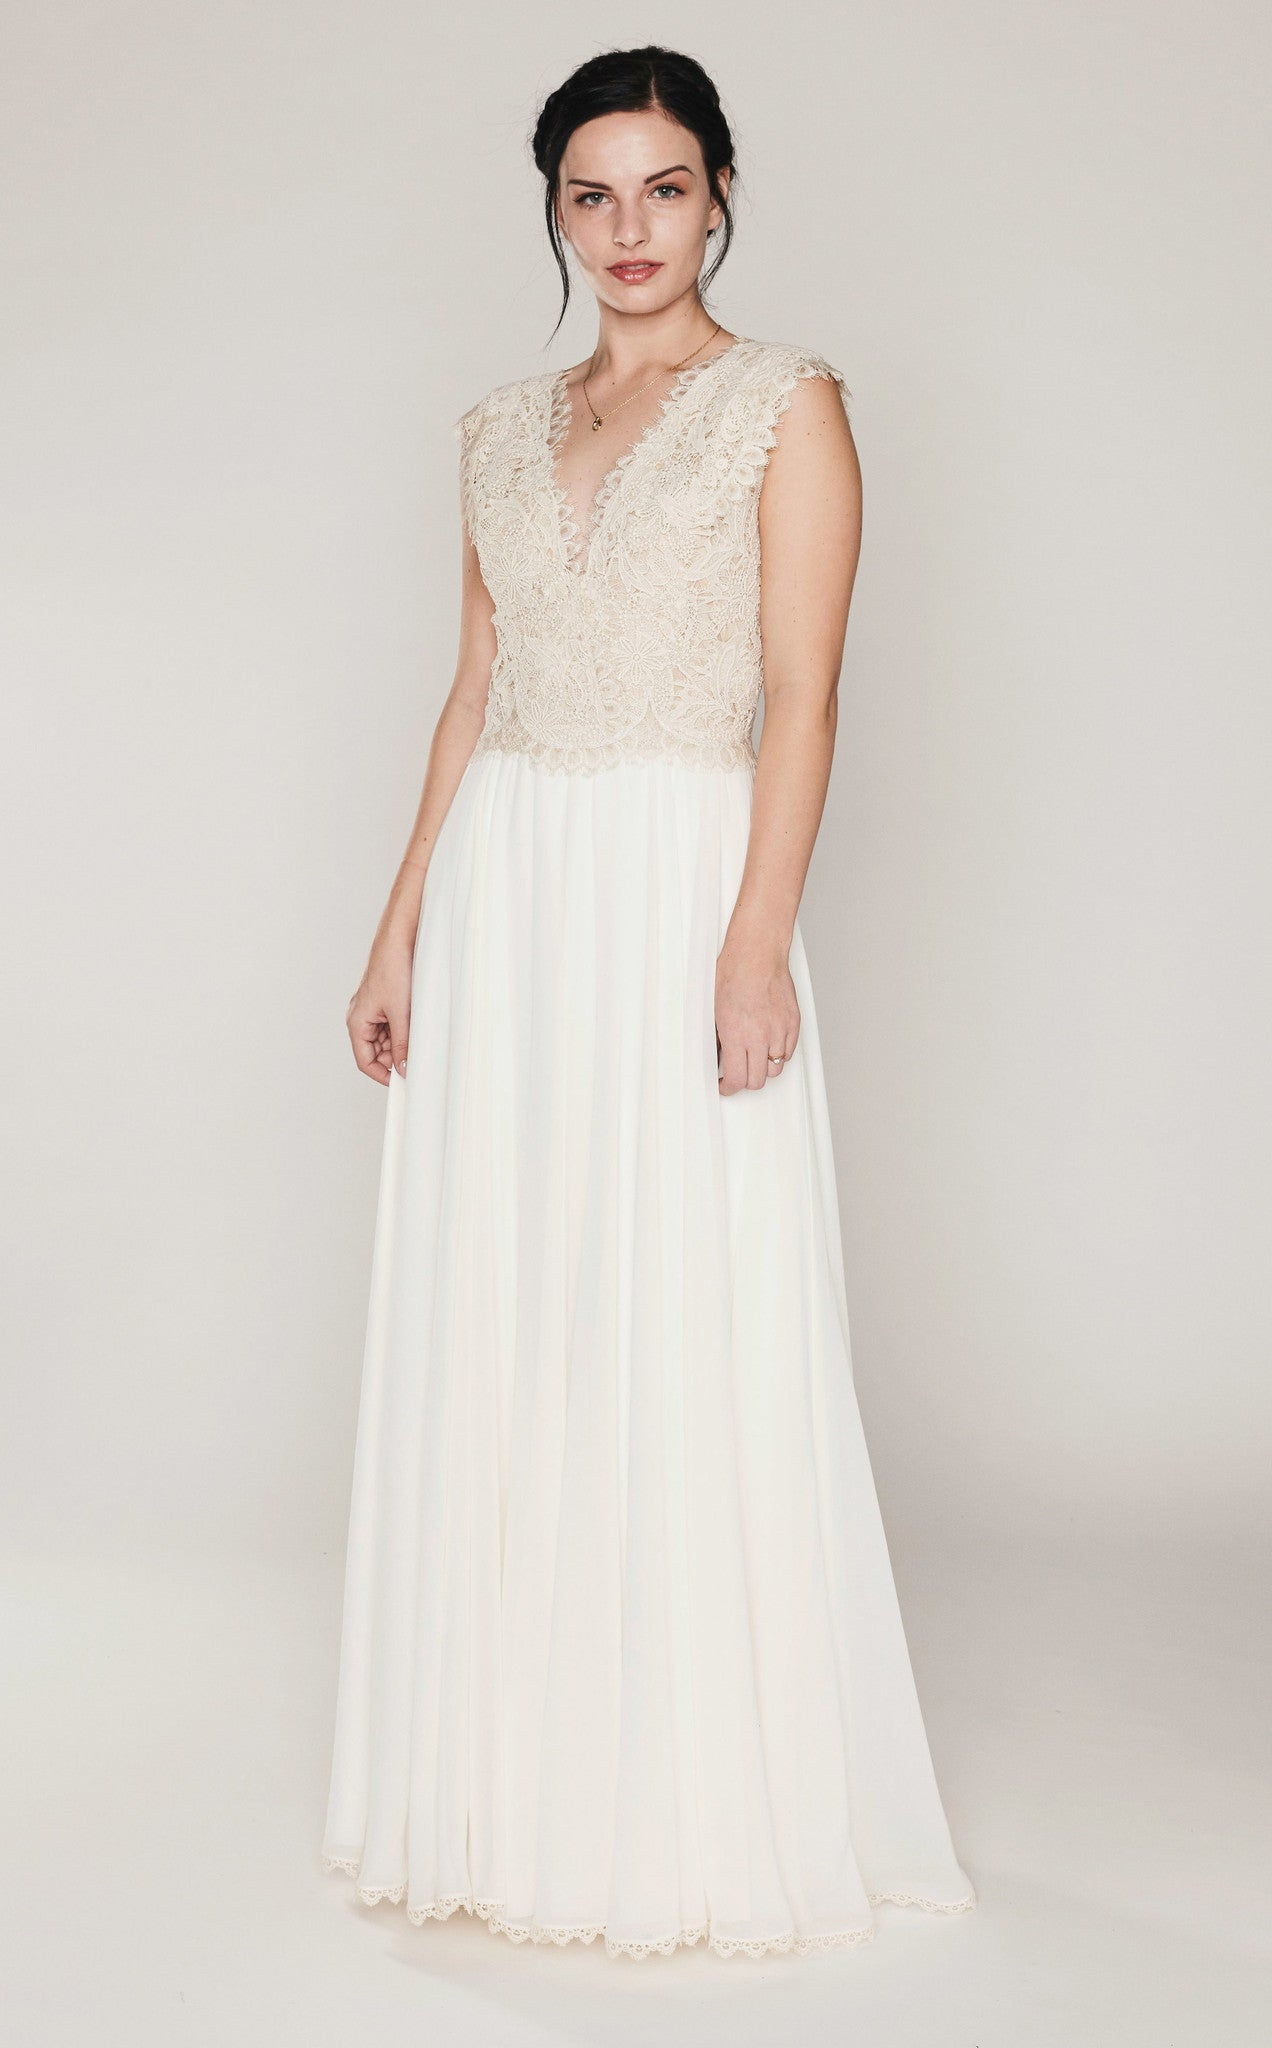 Martin McCrea Wedding Dresses | Simple, Elegant, Vintage Inspired ...